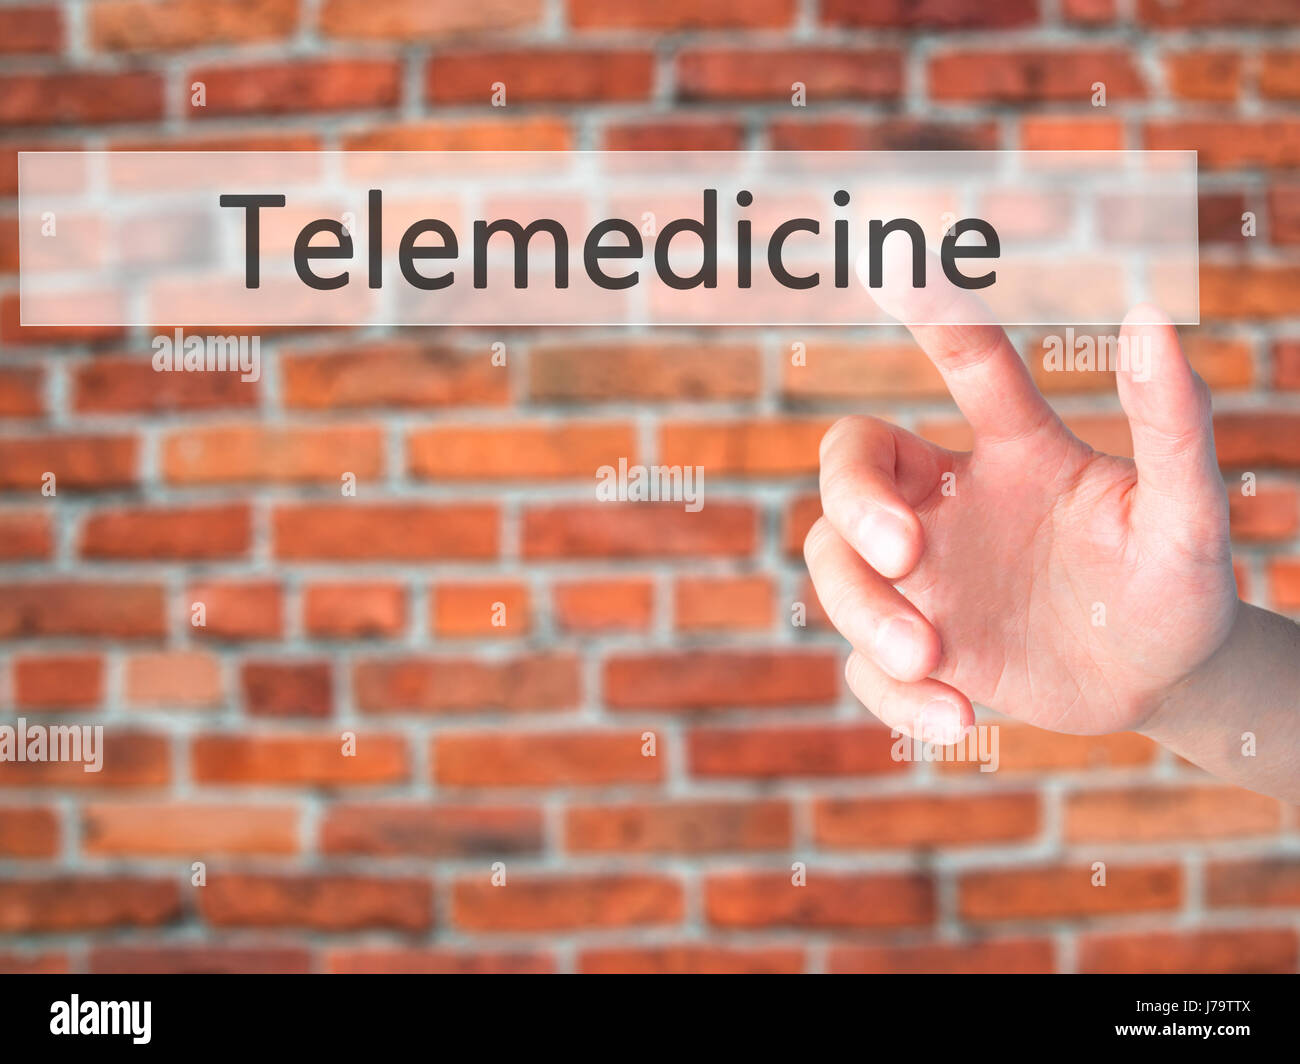 Telemedicine - Hand pressing a button on blurred background concept . Business, technology, internet concept. Stock - Stock Image